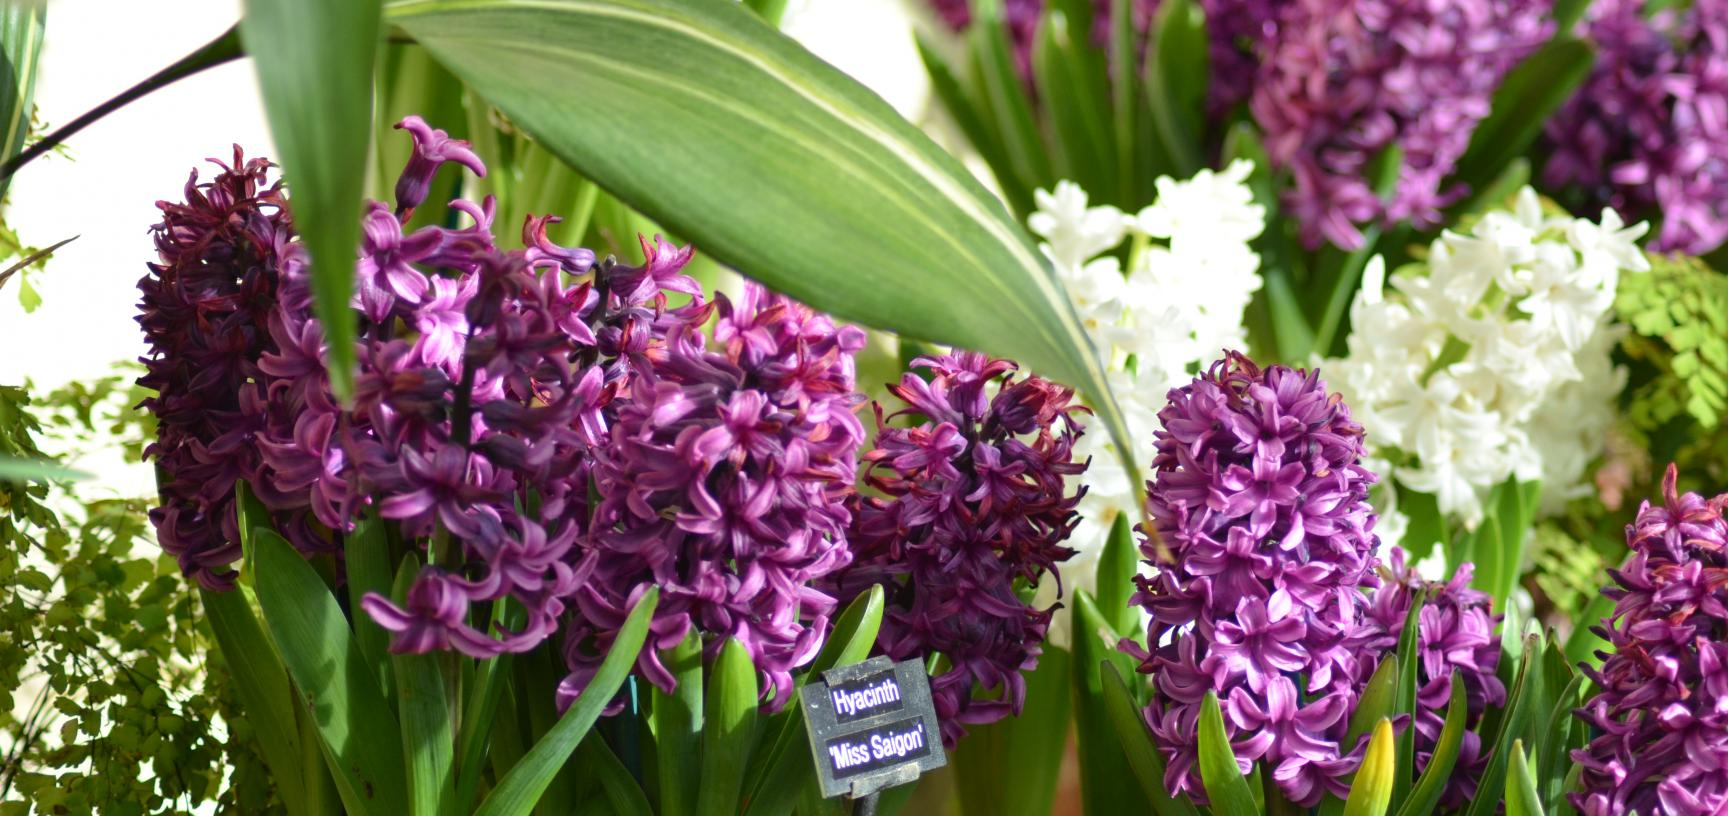 Hyacinth display in Conservatory